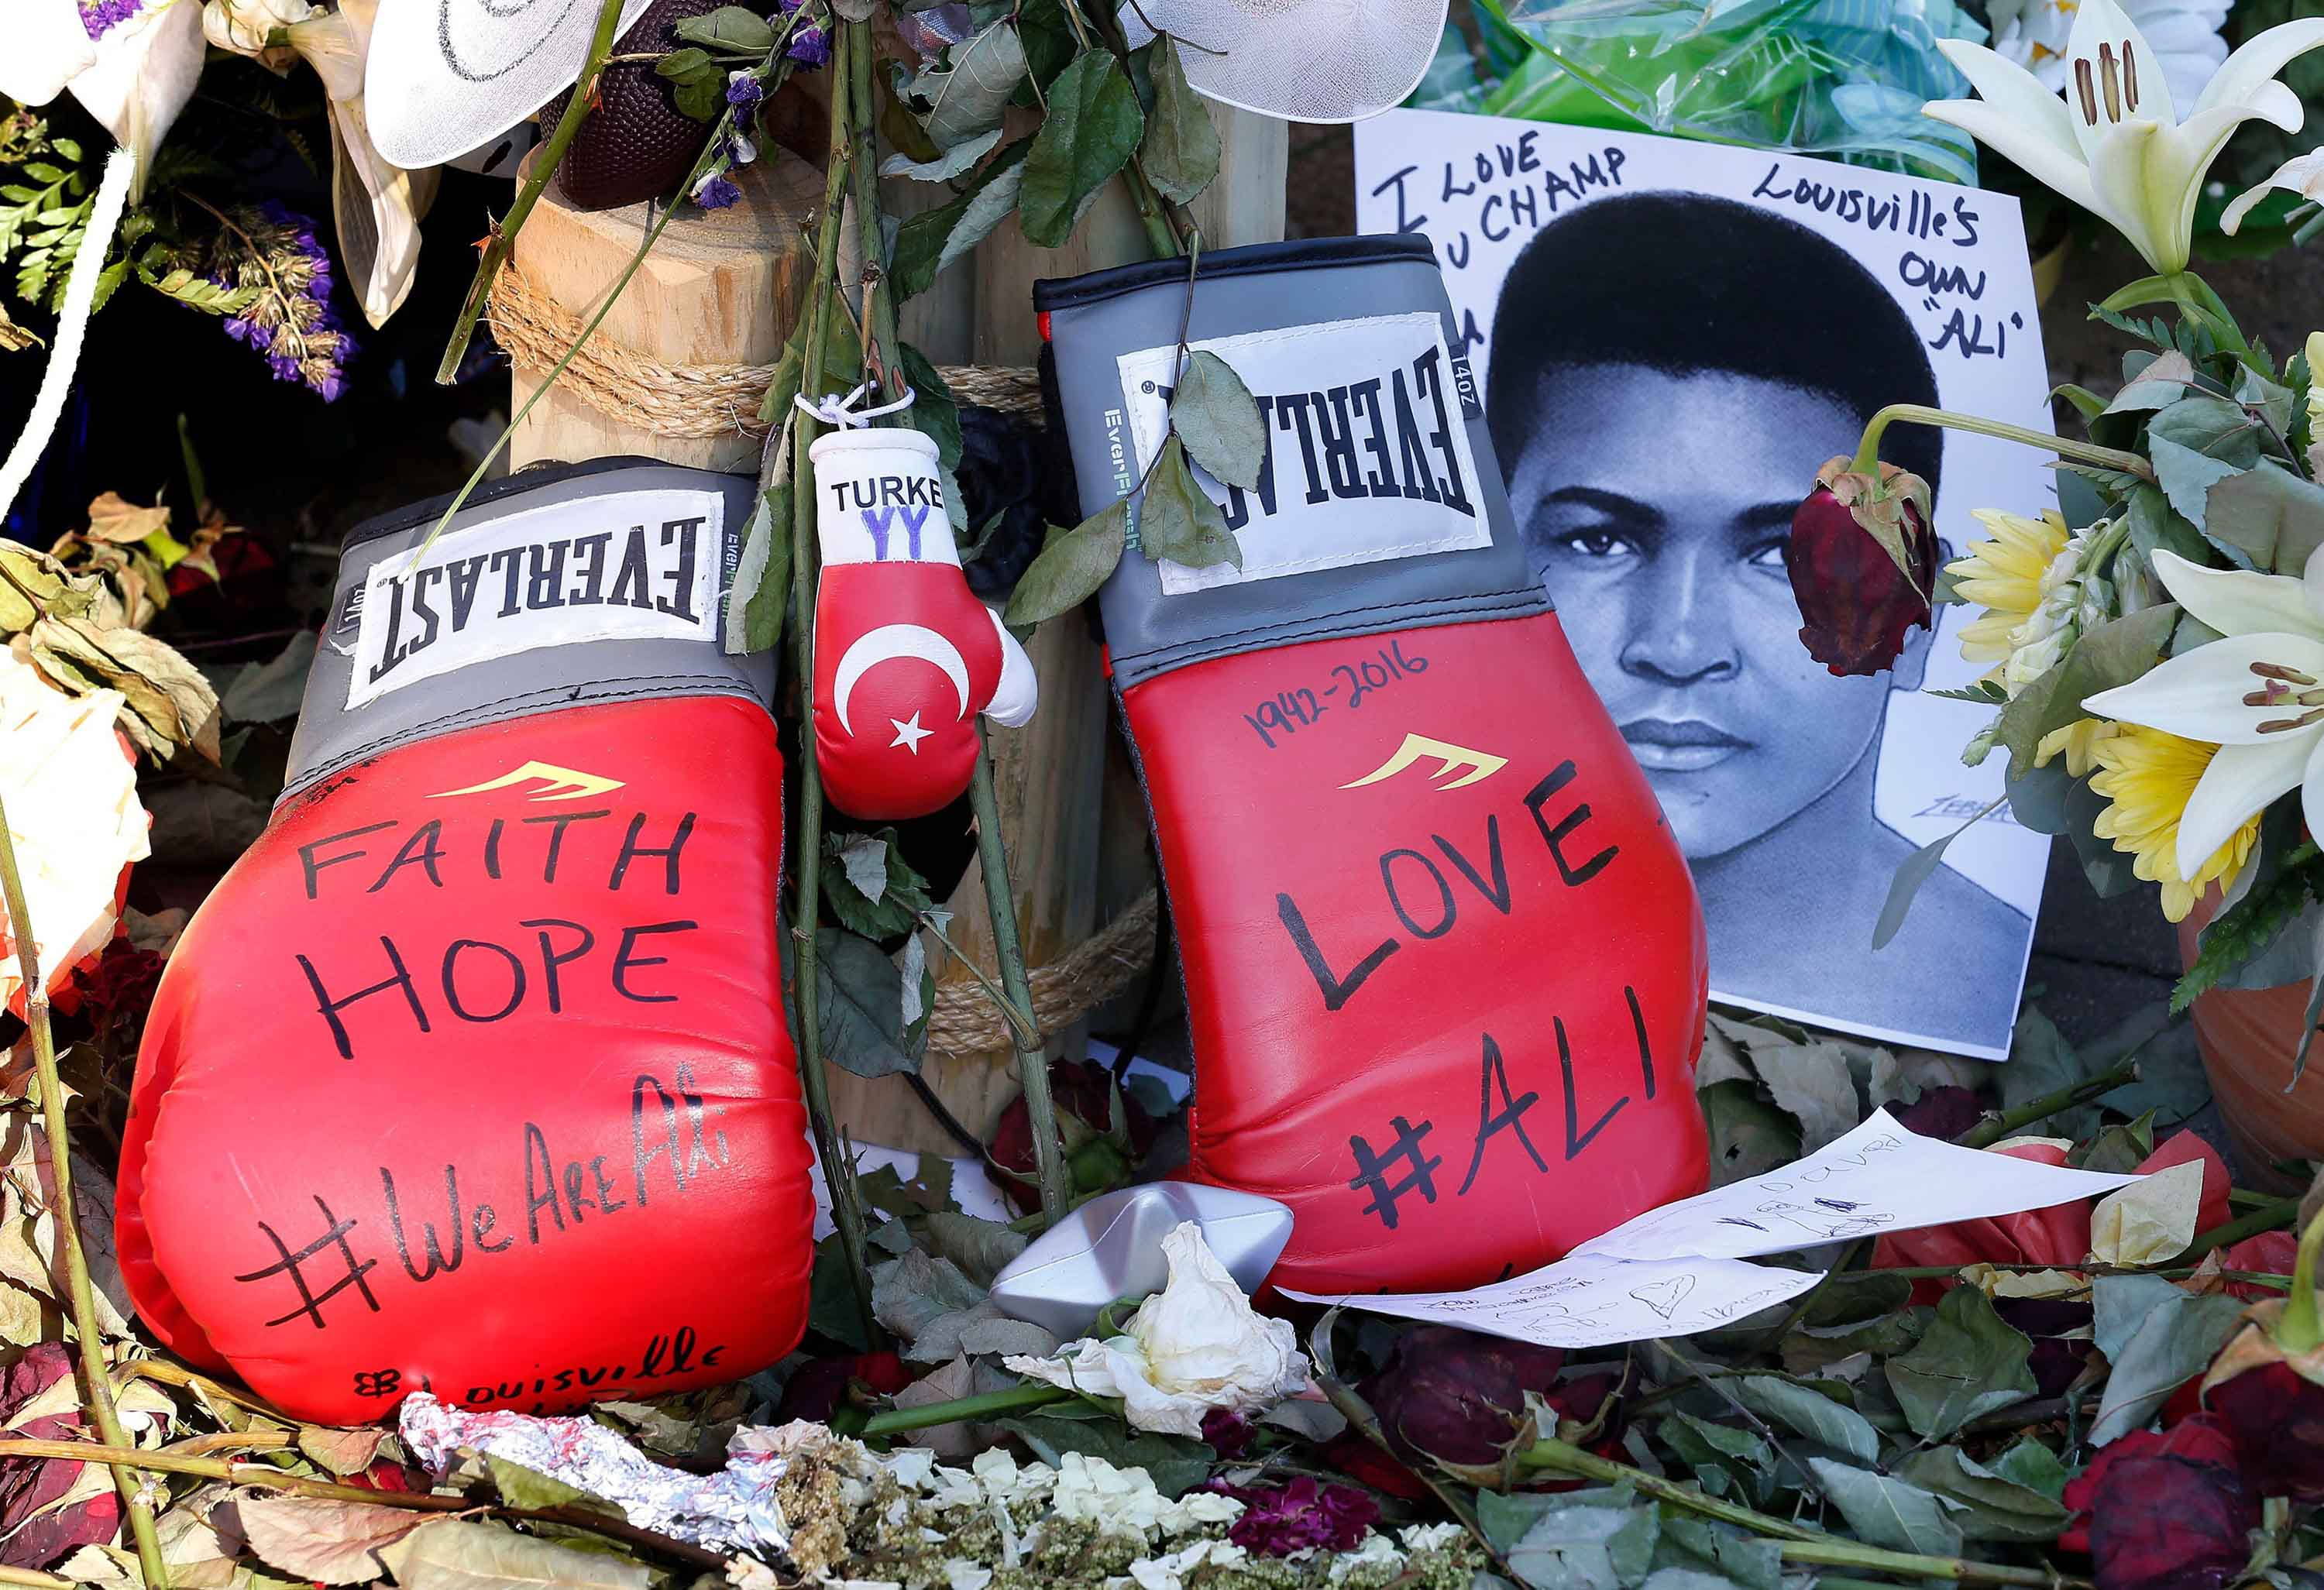 Boxing gloves left at the makeshift memorial at the Muhammed Ali Center in downtown Louisville, Ky., on Friday, June 10, 2016. Ali, a three-time world heavyweight champion, died June 3, 2016, at 74. (Charles Bertram/Lexington Herald-Leader/TNS)